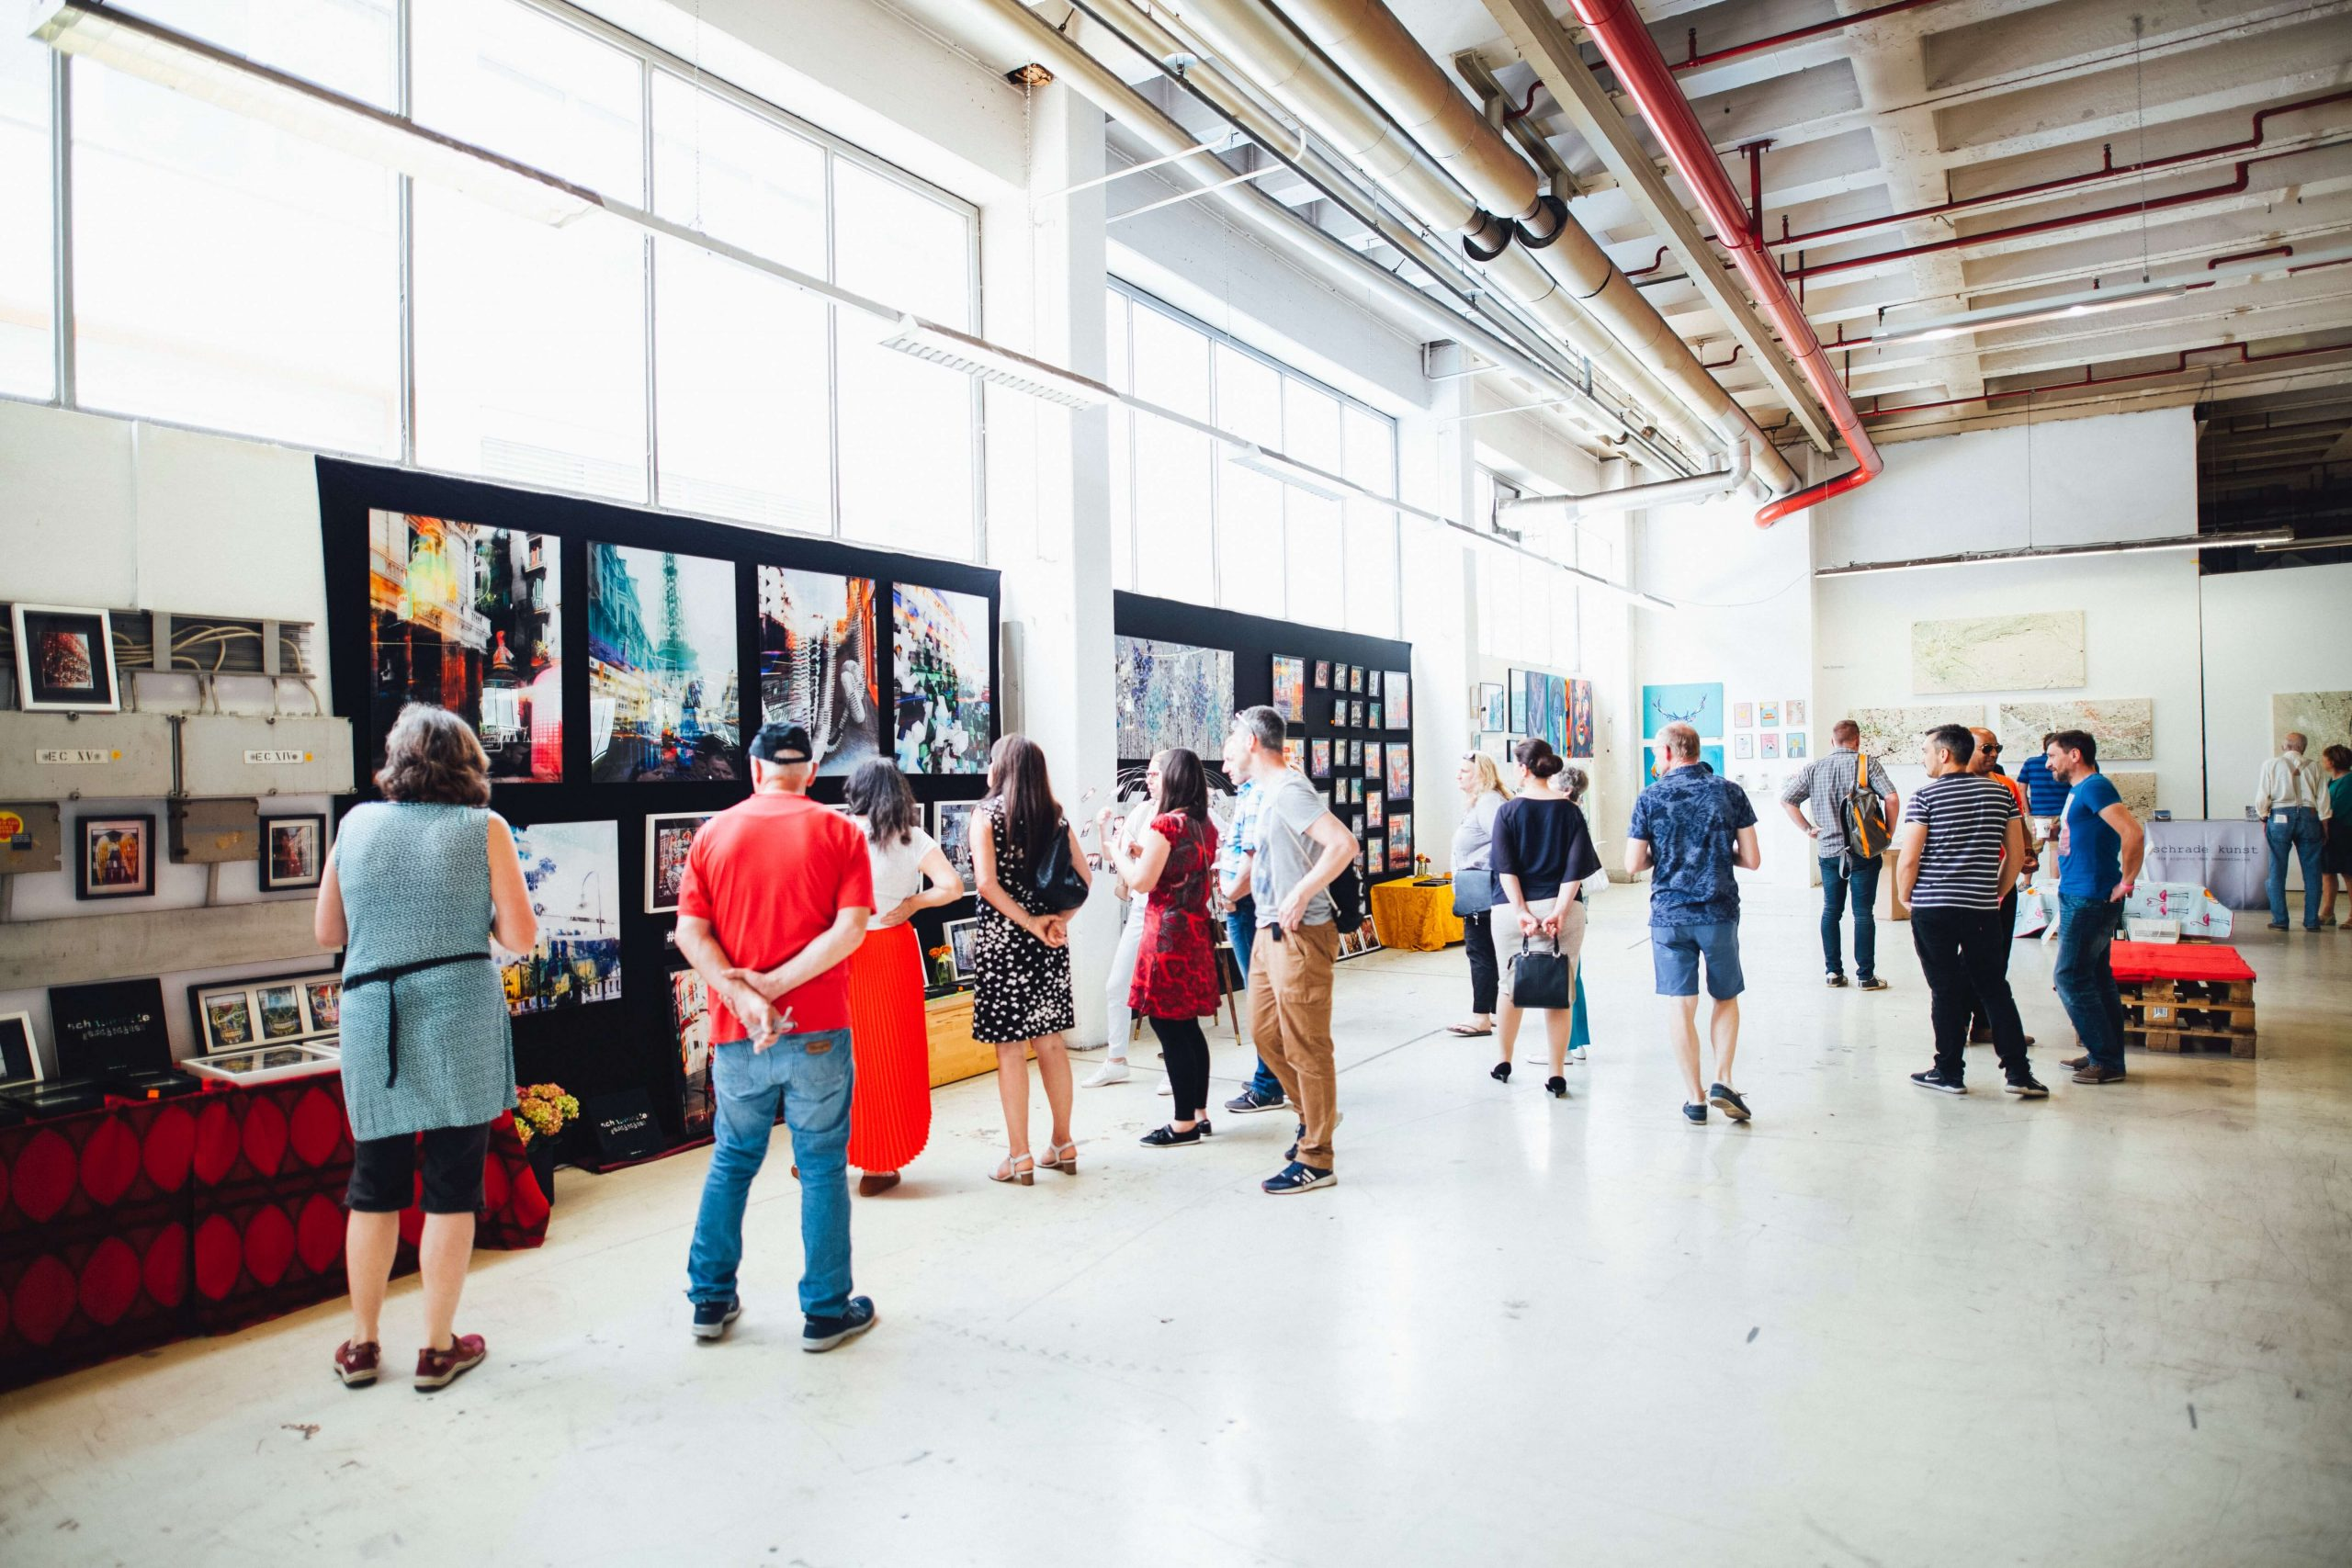 Exhibition Planning: How to Plan a Successful Exhibition